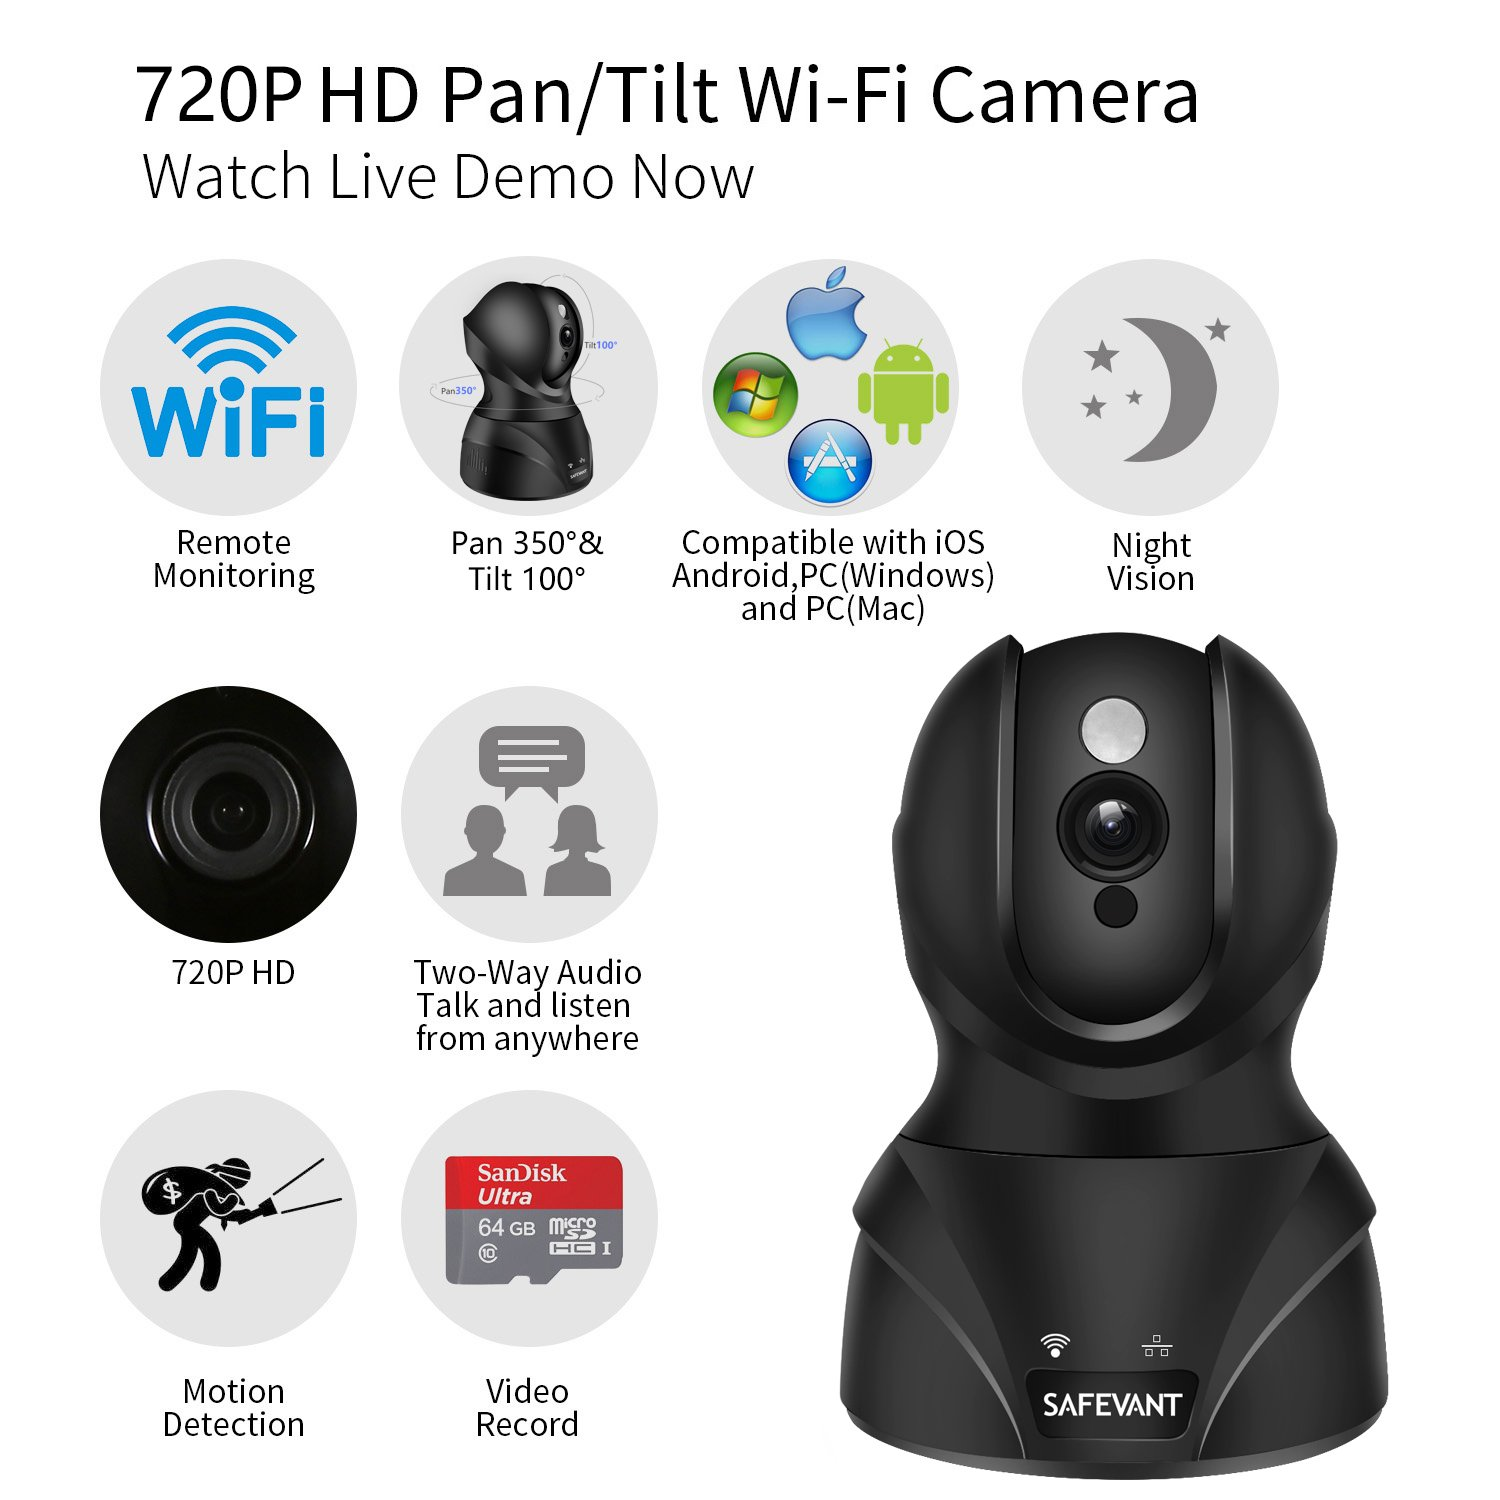 Wireless Security Camera, SAFEVANT HD WiFi IP Camera Surveillance Camera with Two Way Audio Night Vision for Pet Monitor, Nanny Camera, Baby Monitor and Puppy Cam by SAFEVANT (Image #2)